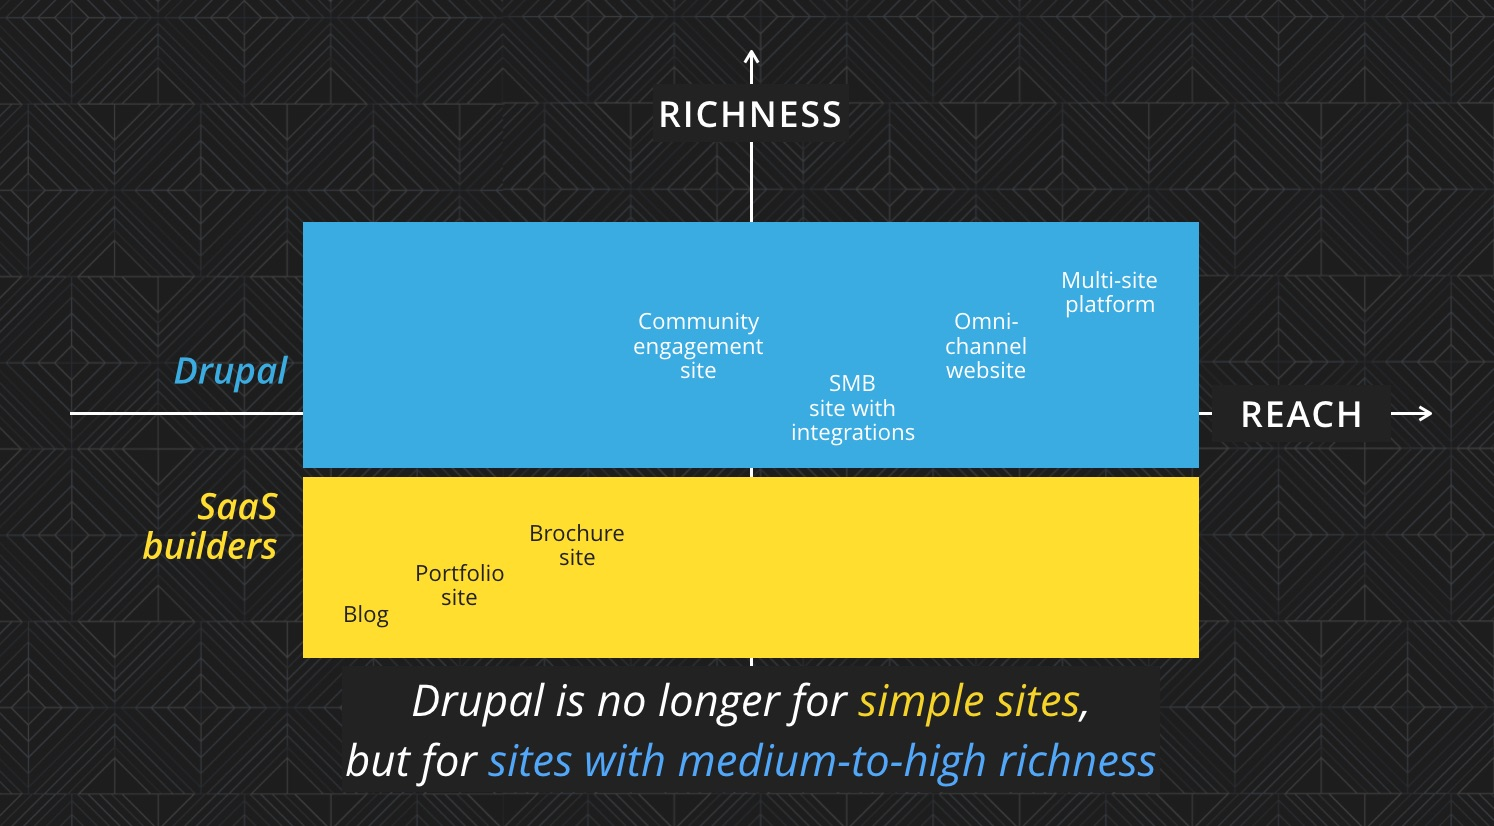 Drupal is no longer for simple sites, but for sites with medium-to-high richness